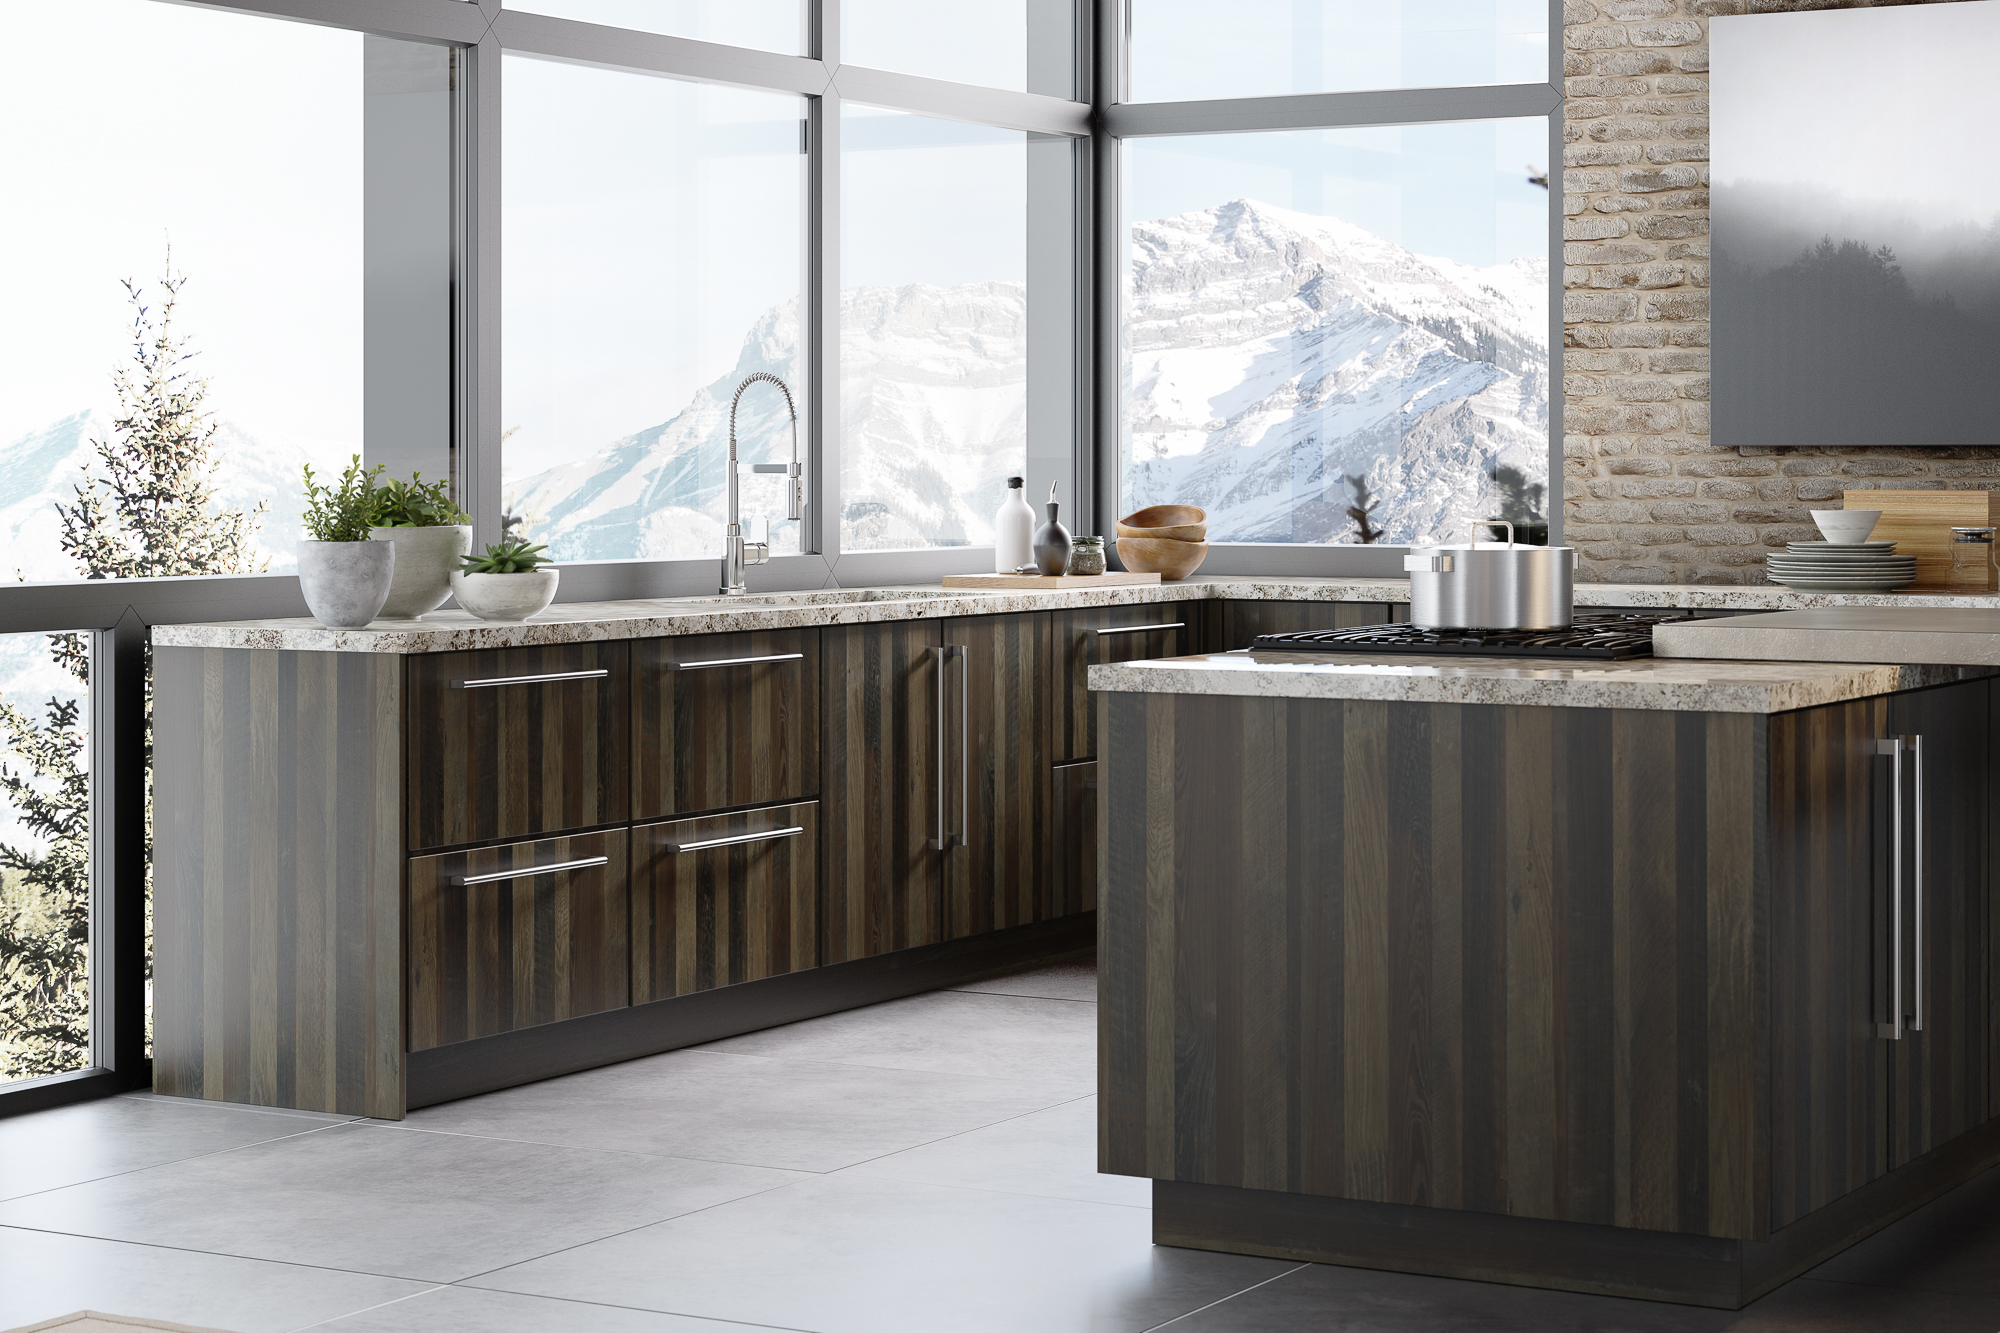 Slab style kitchen cabinets with mountain view in Papa's Loft textured melamine and Gauntlet Gray foil by Showplace EVO view 4